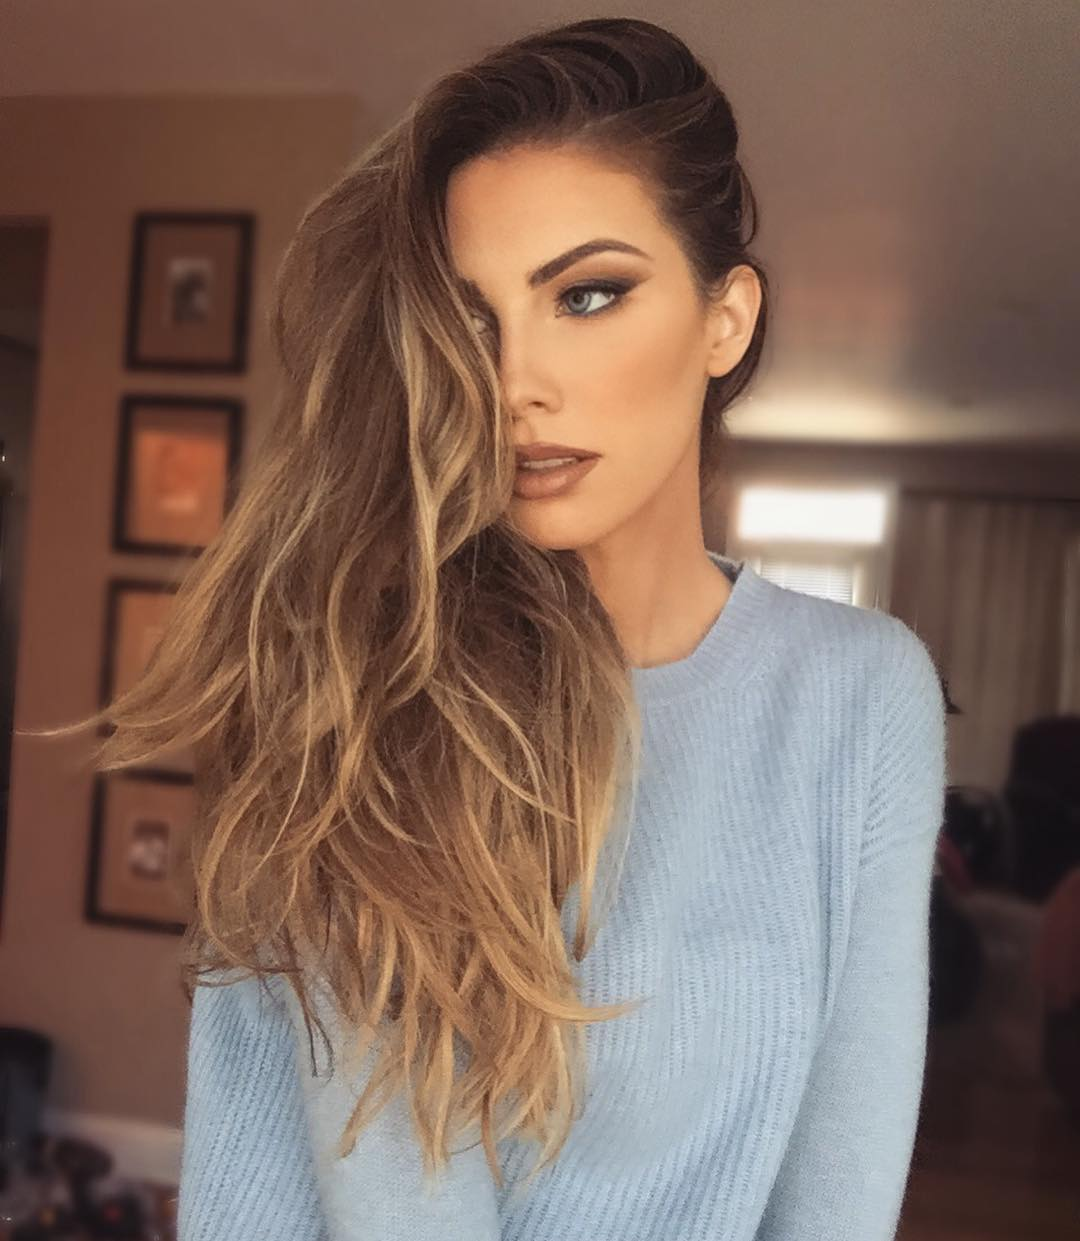 Katherine Webb - McCarron - AJ Mccarons wife - women empowerment - empowering models - own your beauty